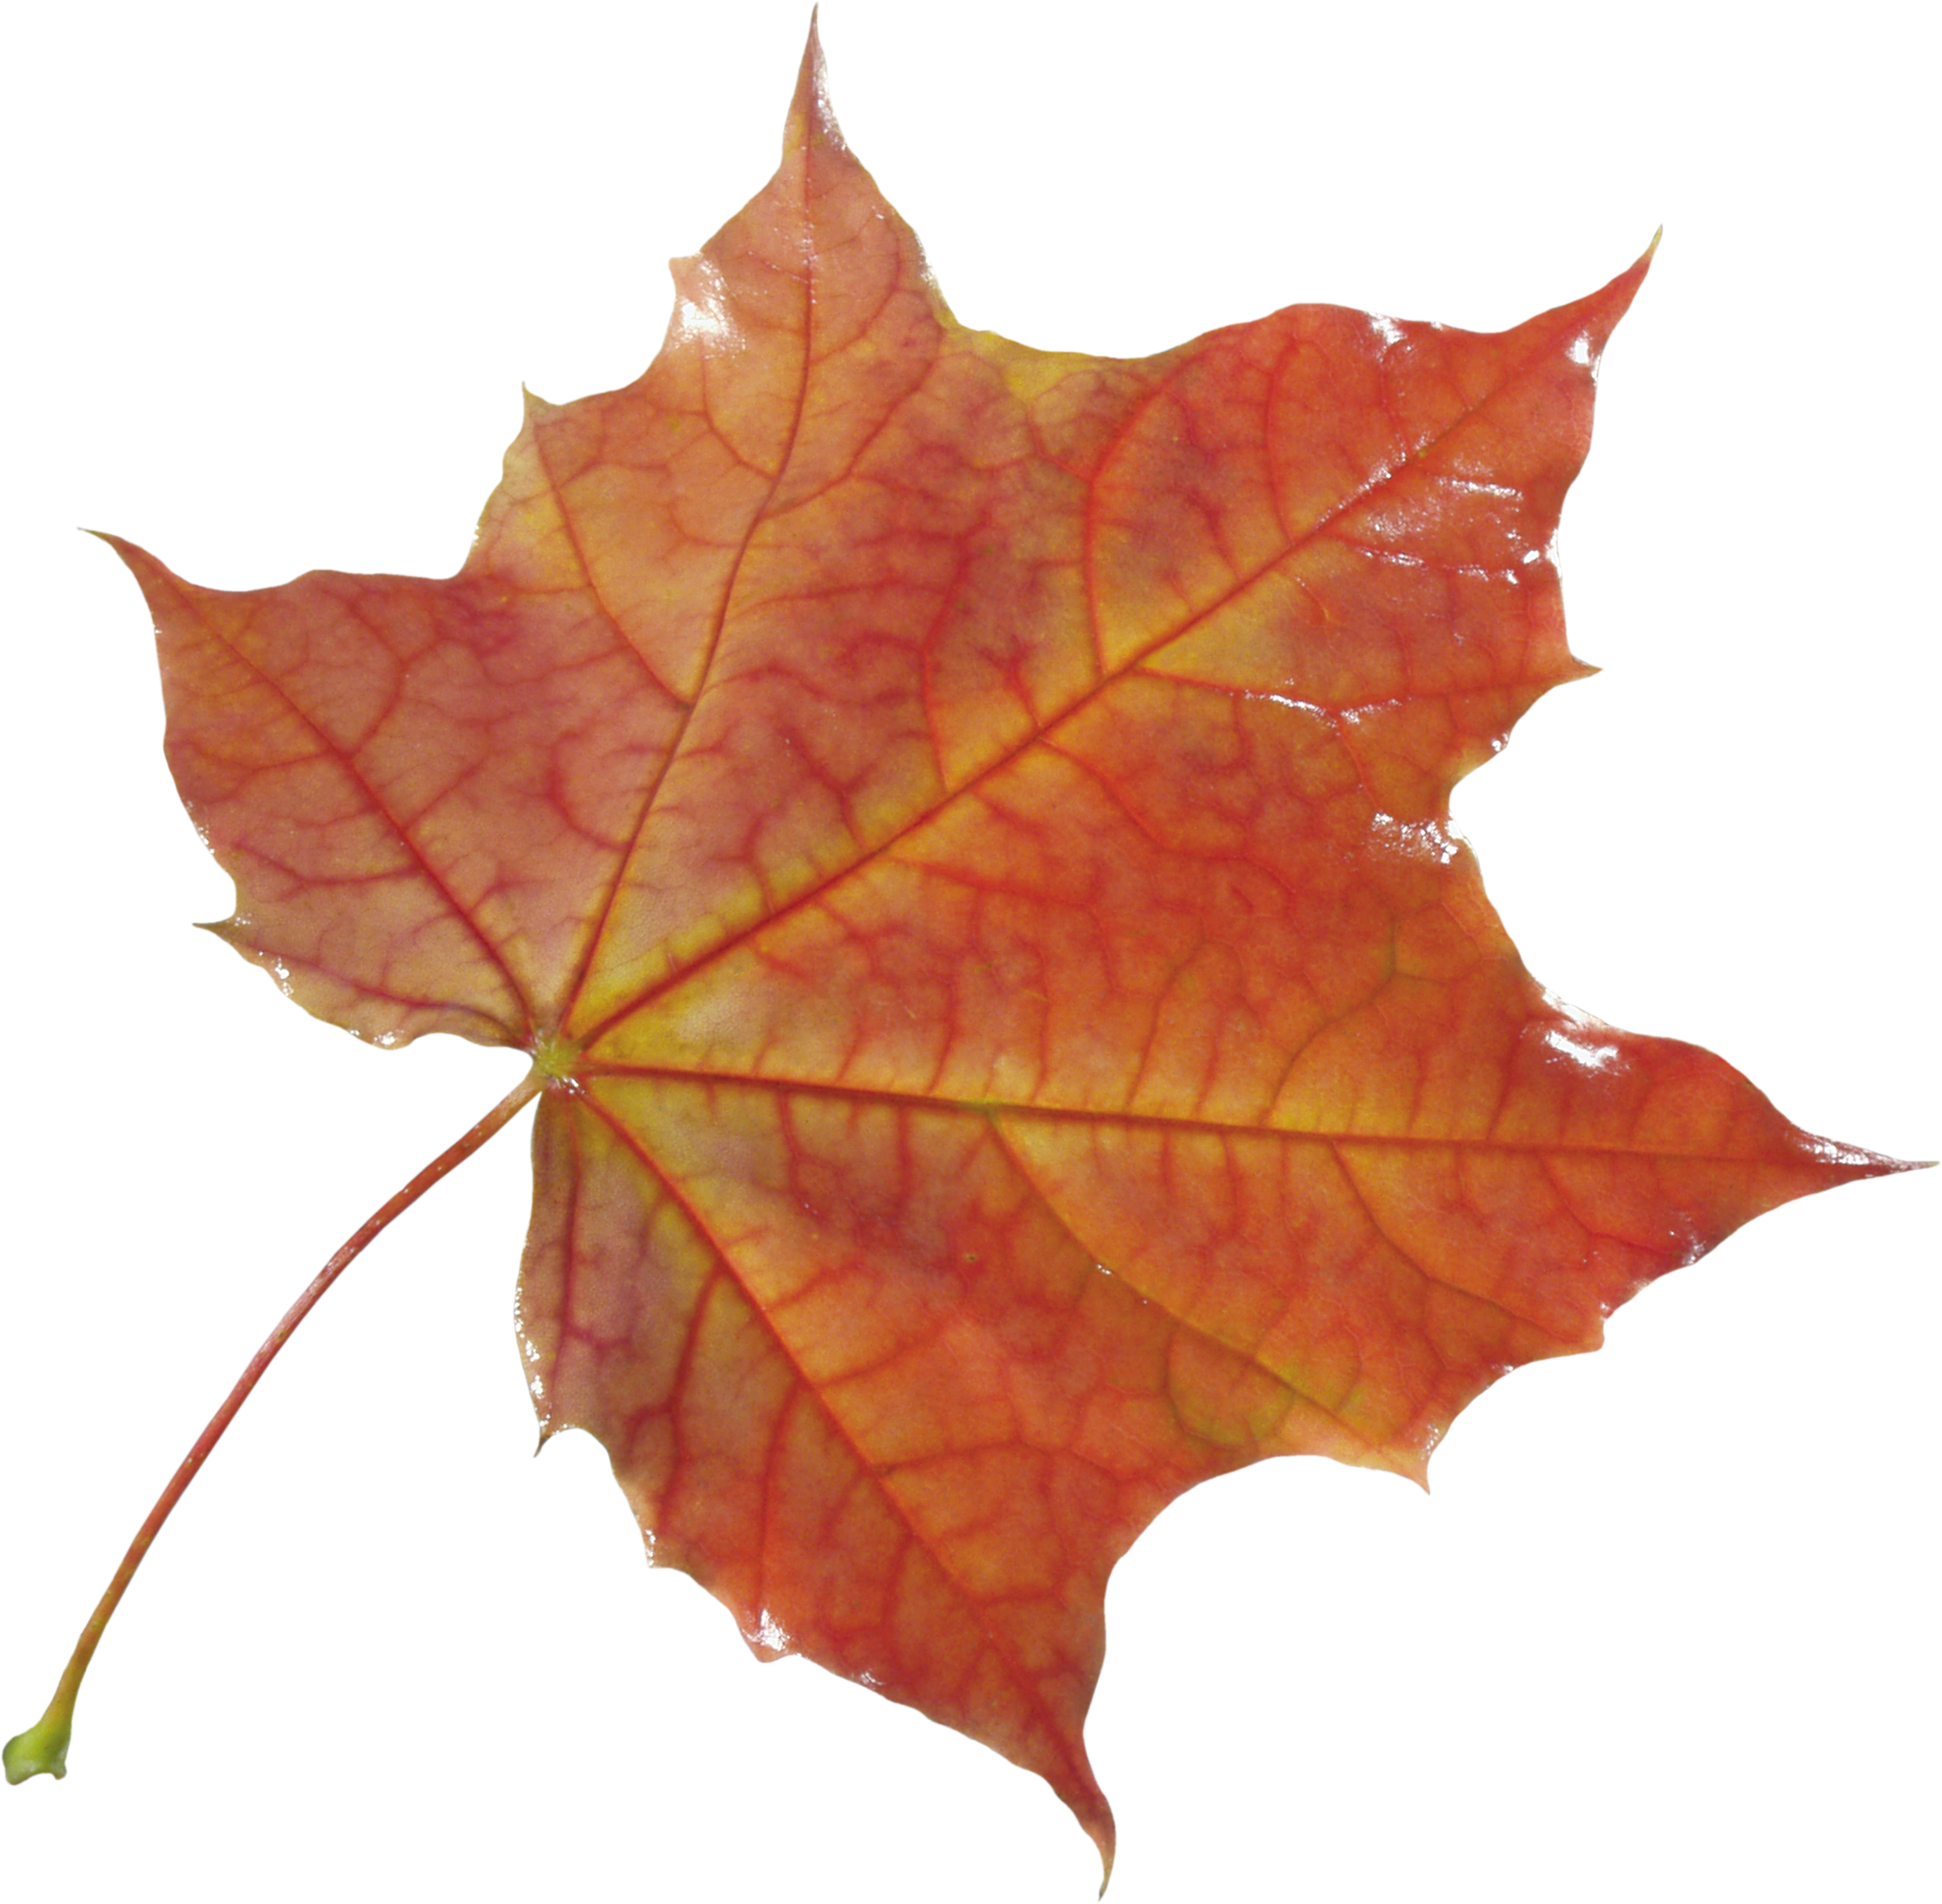 Real falling leaves png. Autumn leaf image purepng